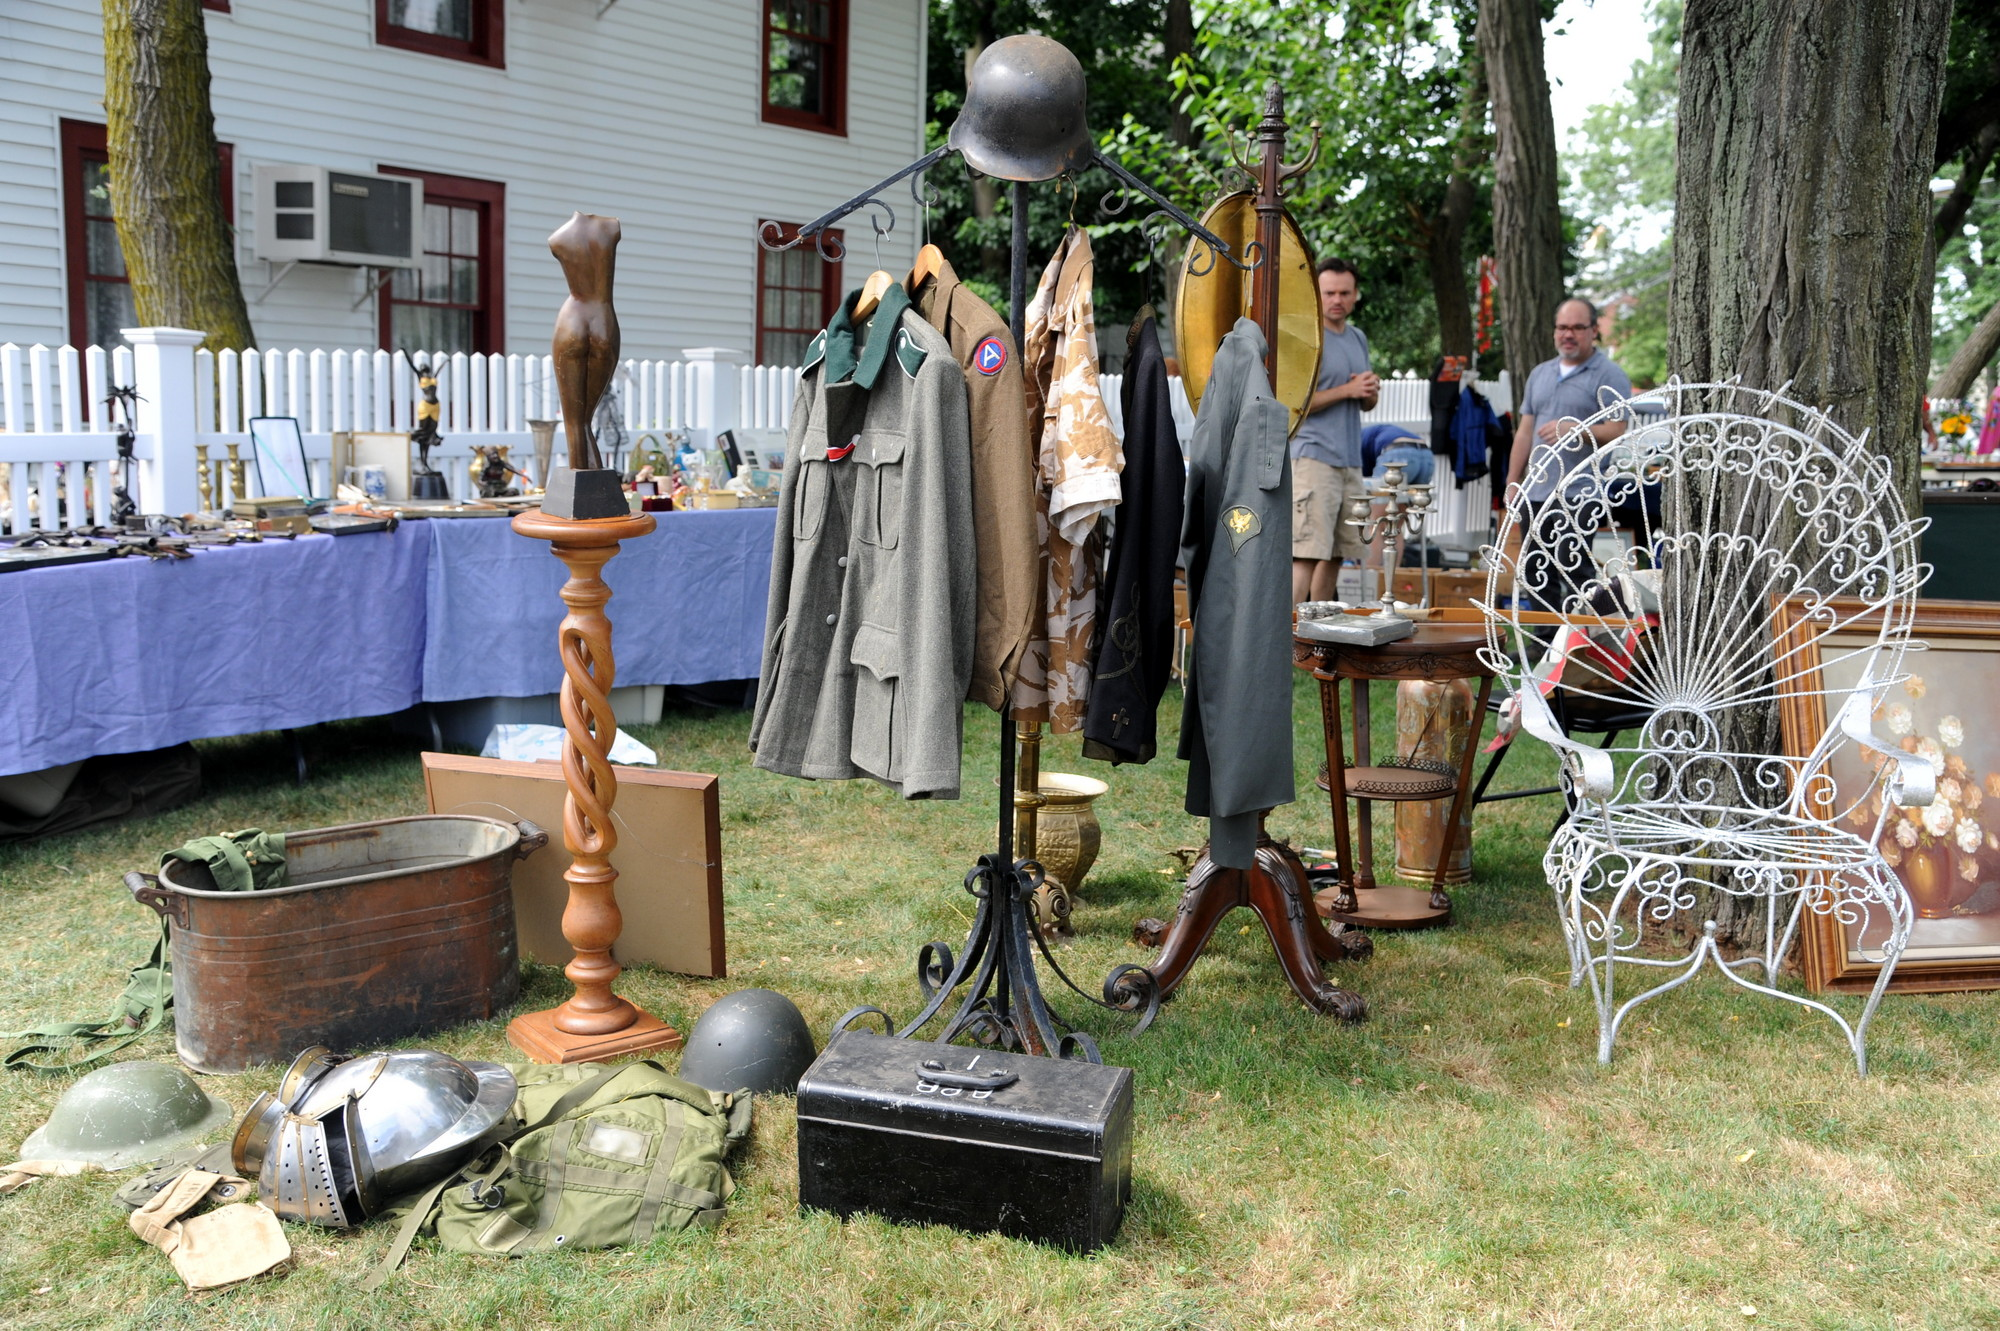 Visitors rummaged through a wide spread of antiques at the Trash and Treasure Sale on July 27.